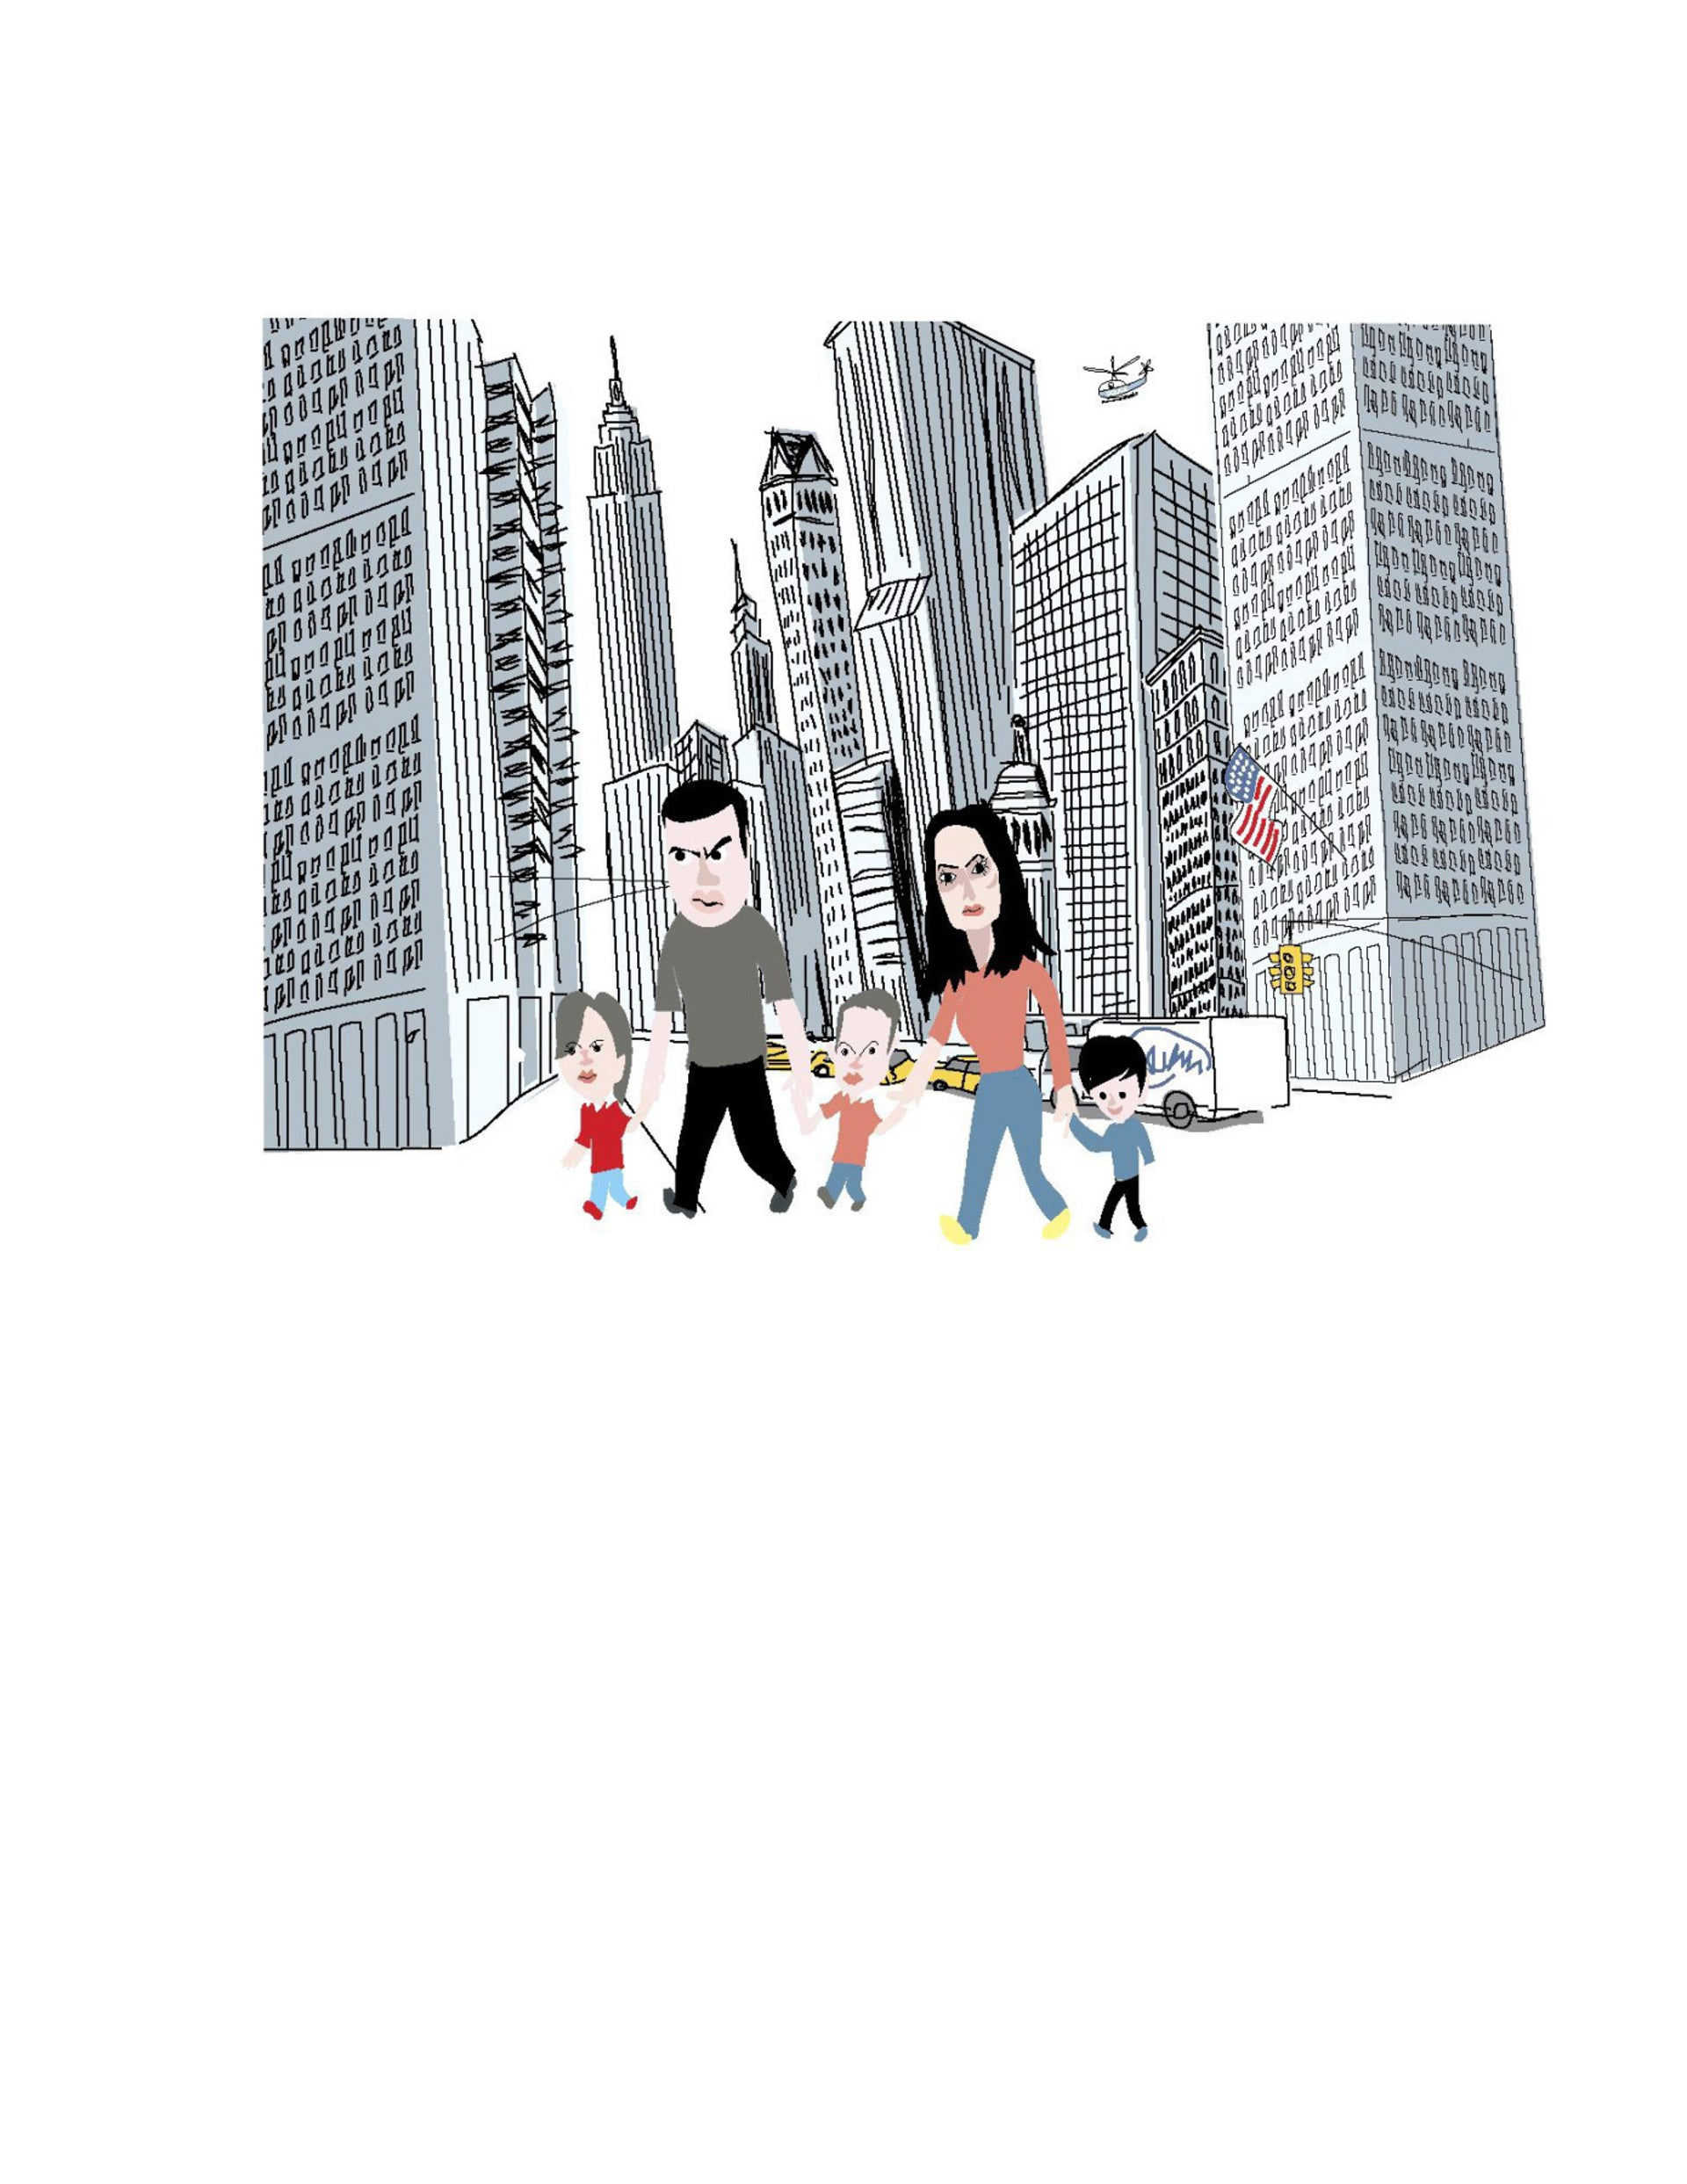 An illustration of Sayed Kashua with his family on a city street.